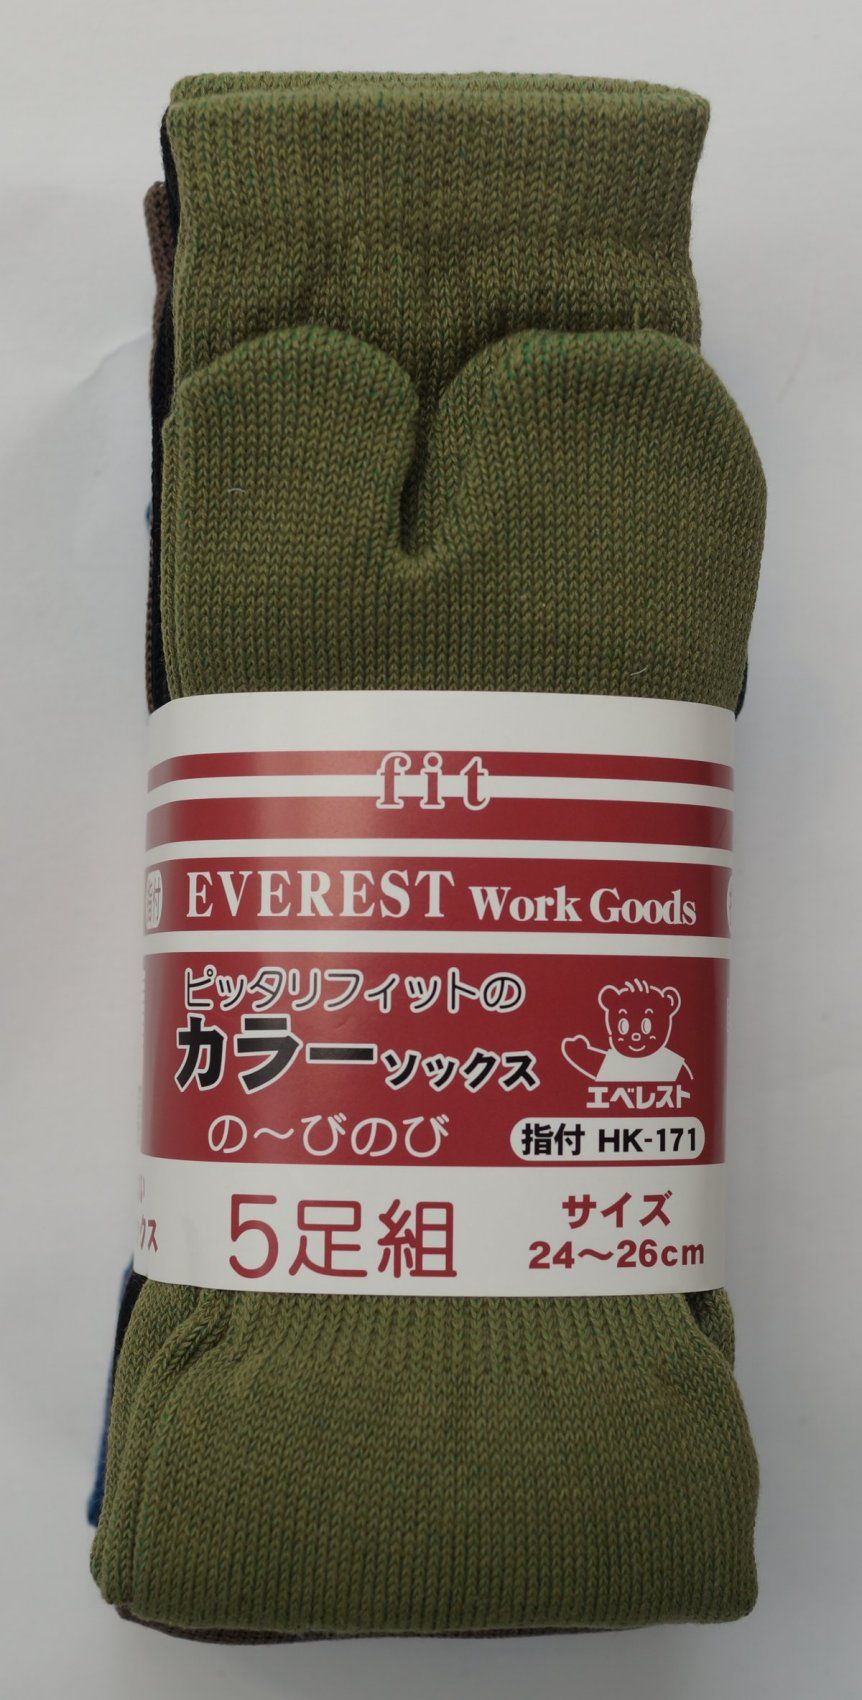 Everest 24~26 cm. ( Pack of 5 Pairs ) http://www.japanstuff.biz/ BUY IT : http://www.japanstuff.biz/TabiSocksIndex.html